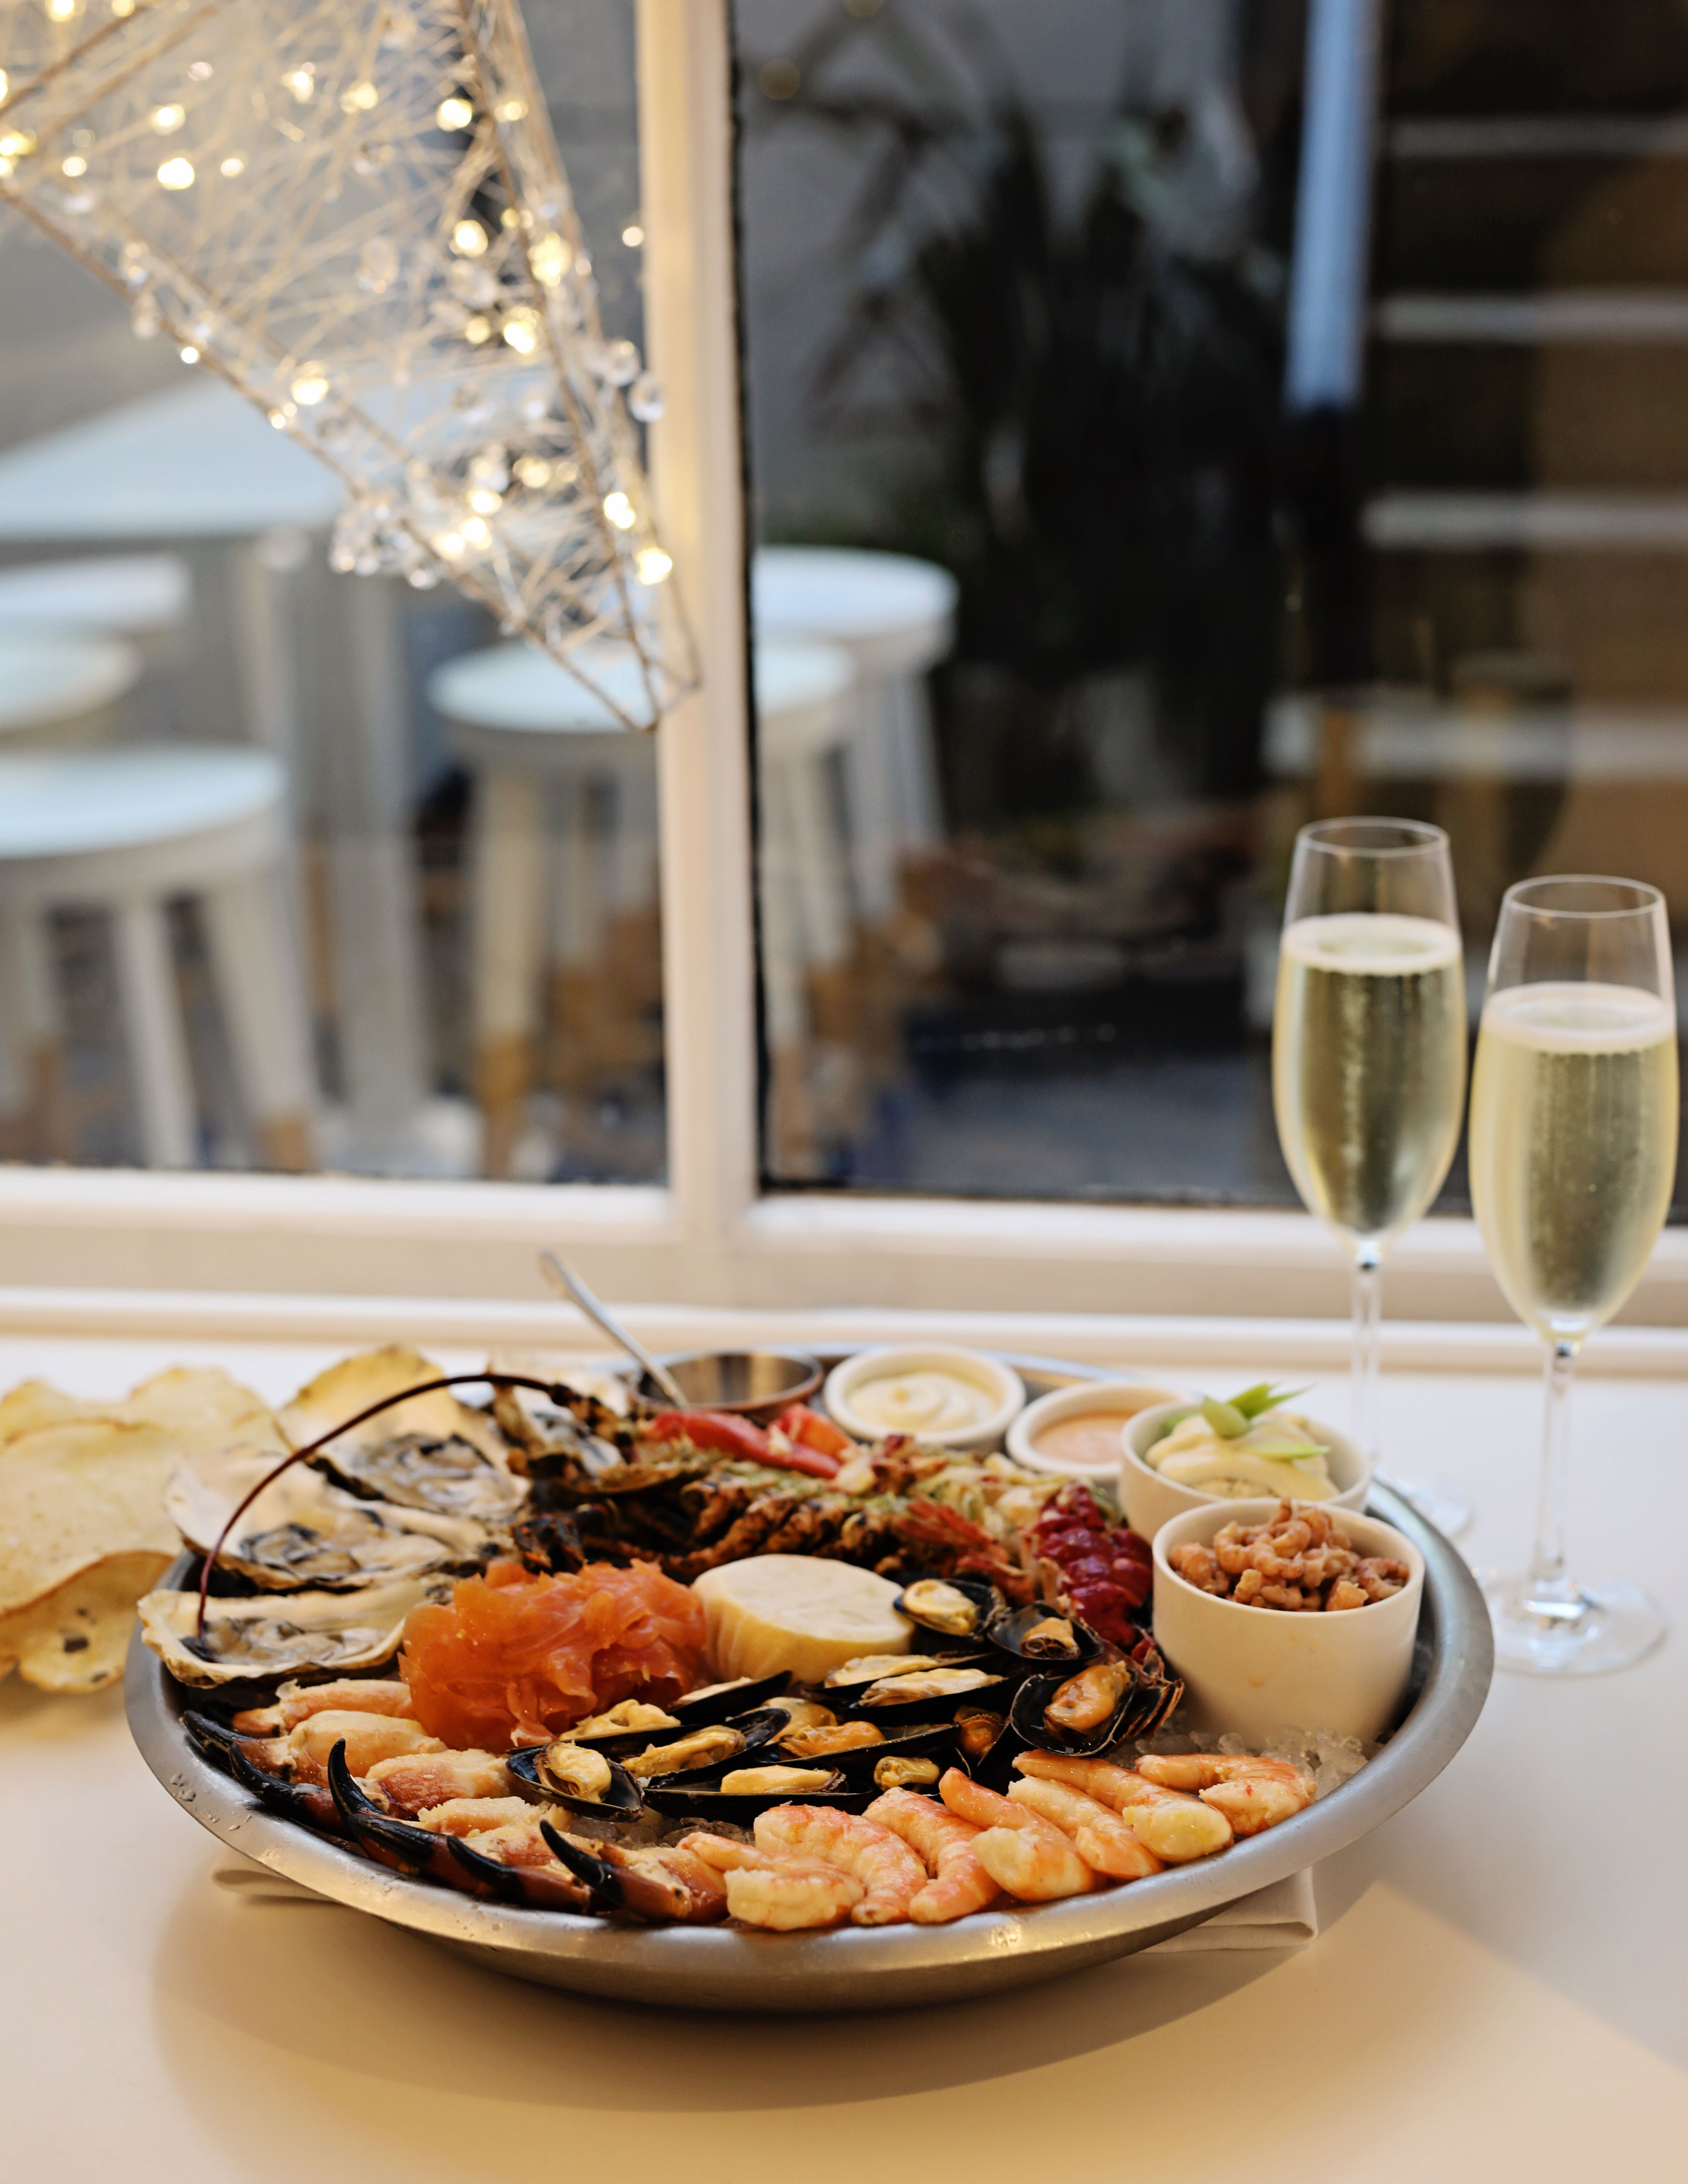 Seafood_platter_and_bubbly_christmas_shopping_full_stop_2_copy